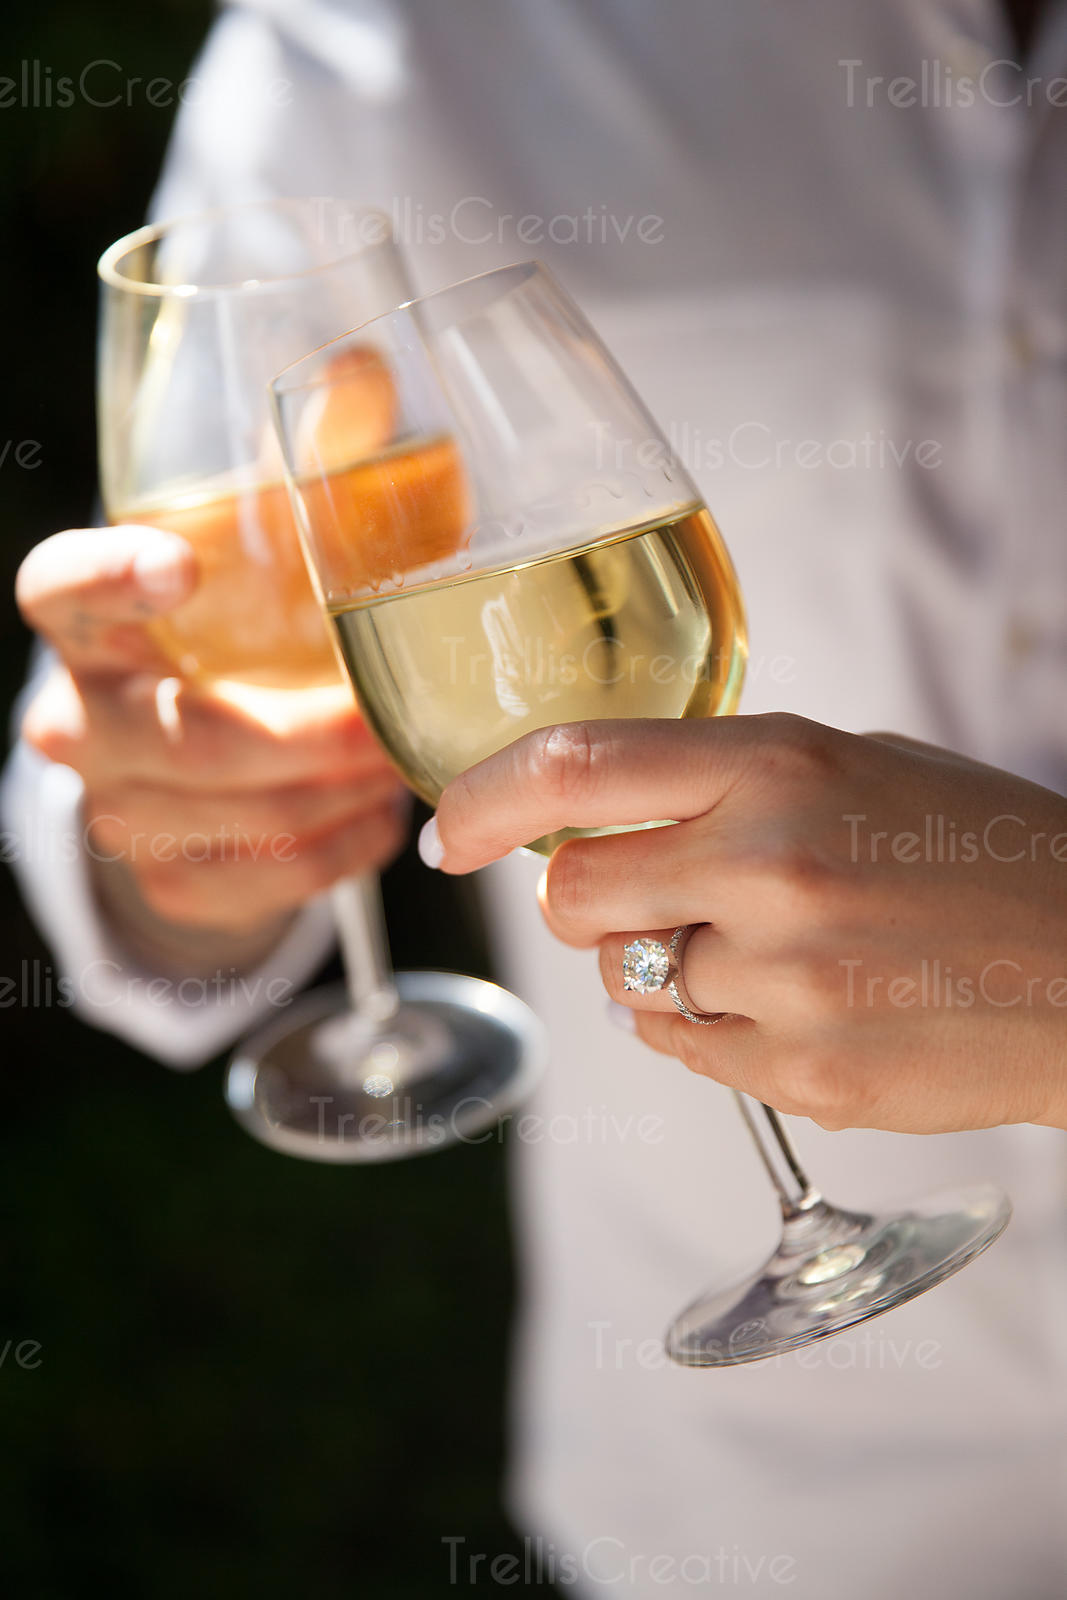 A couple toasts their engagement with white wine